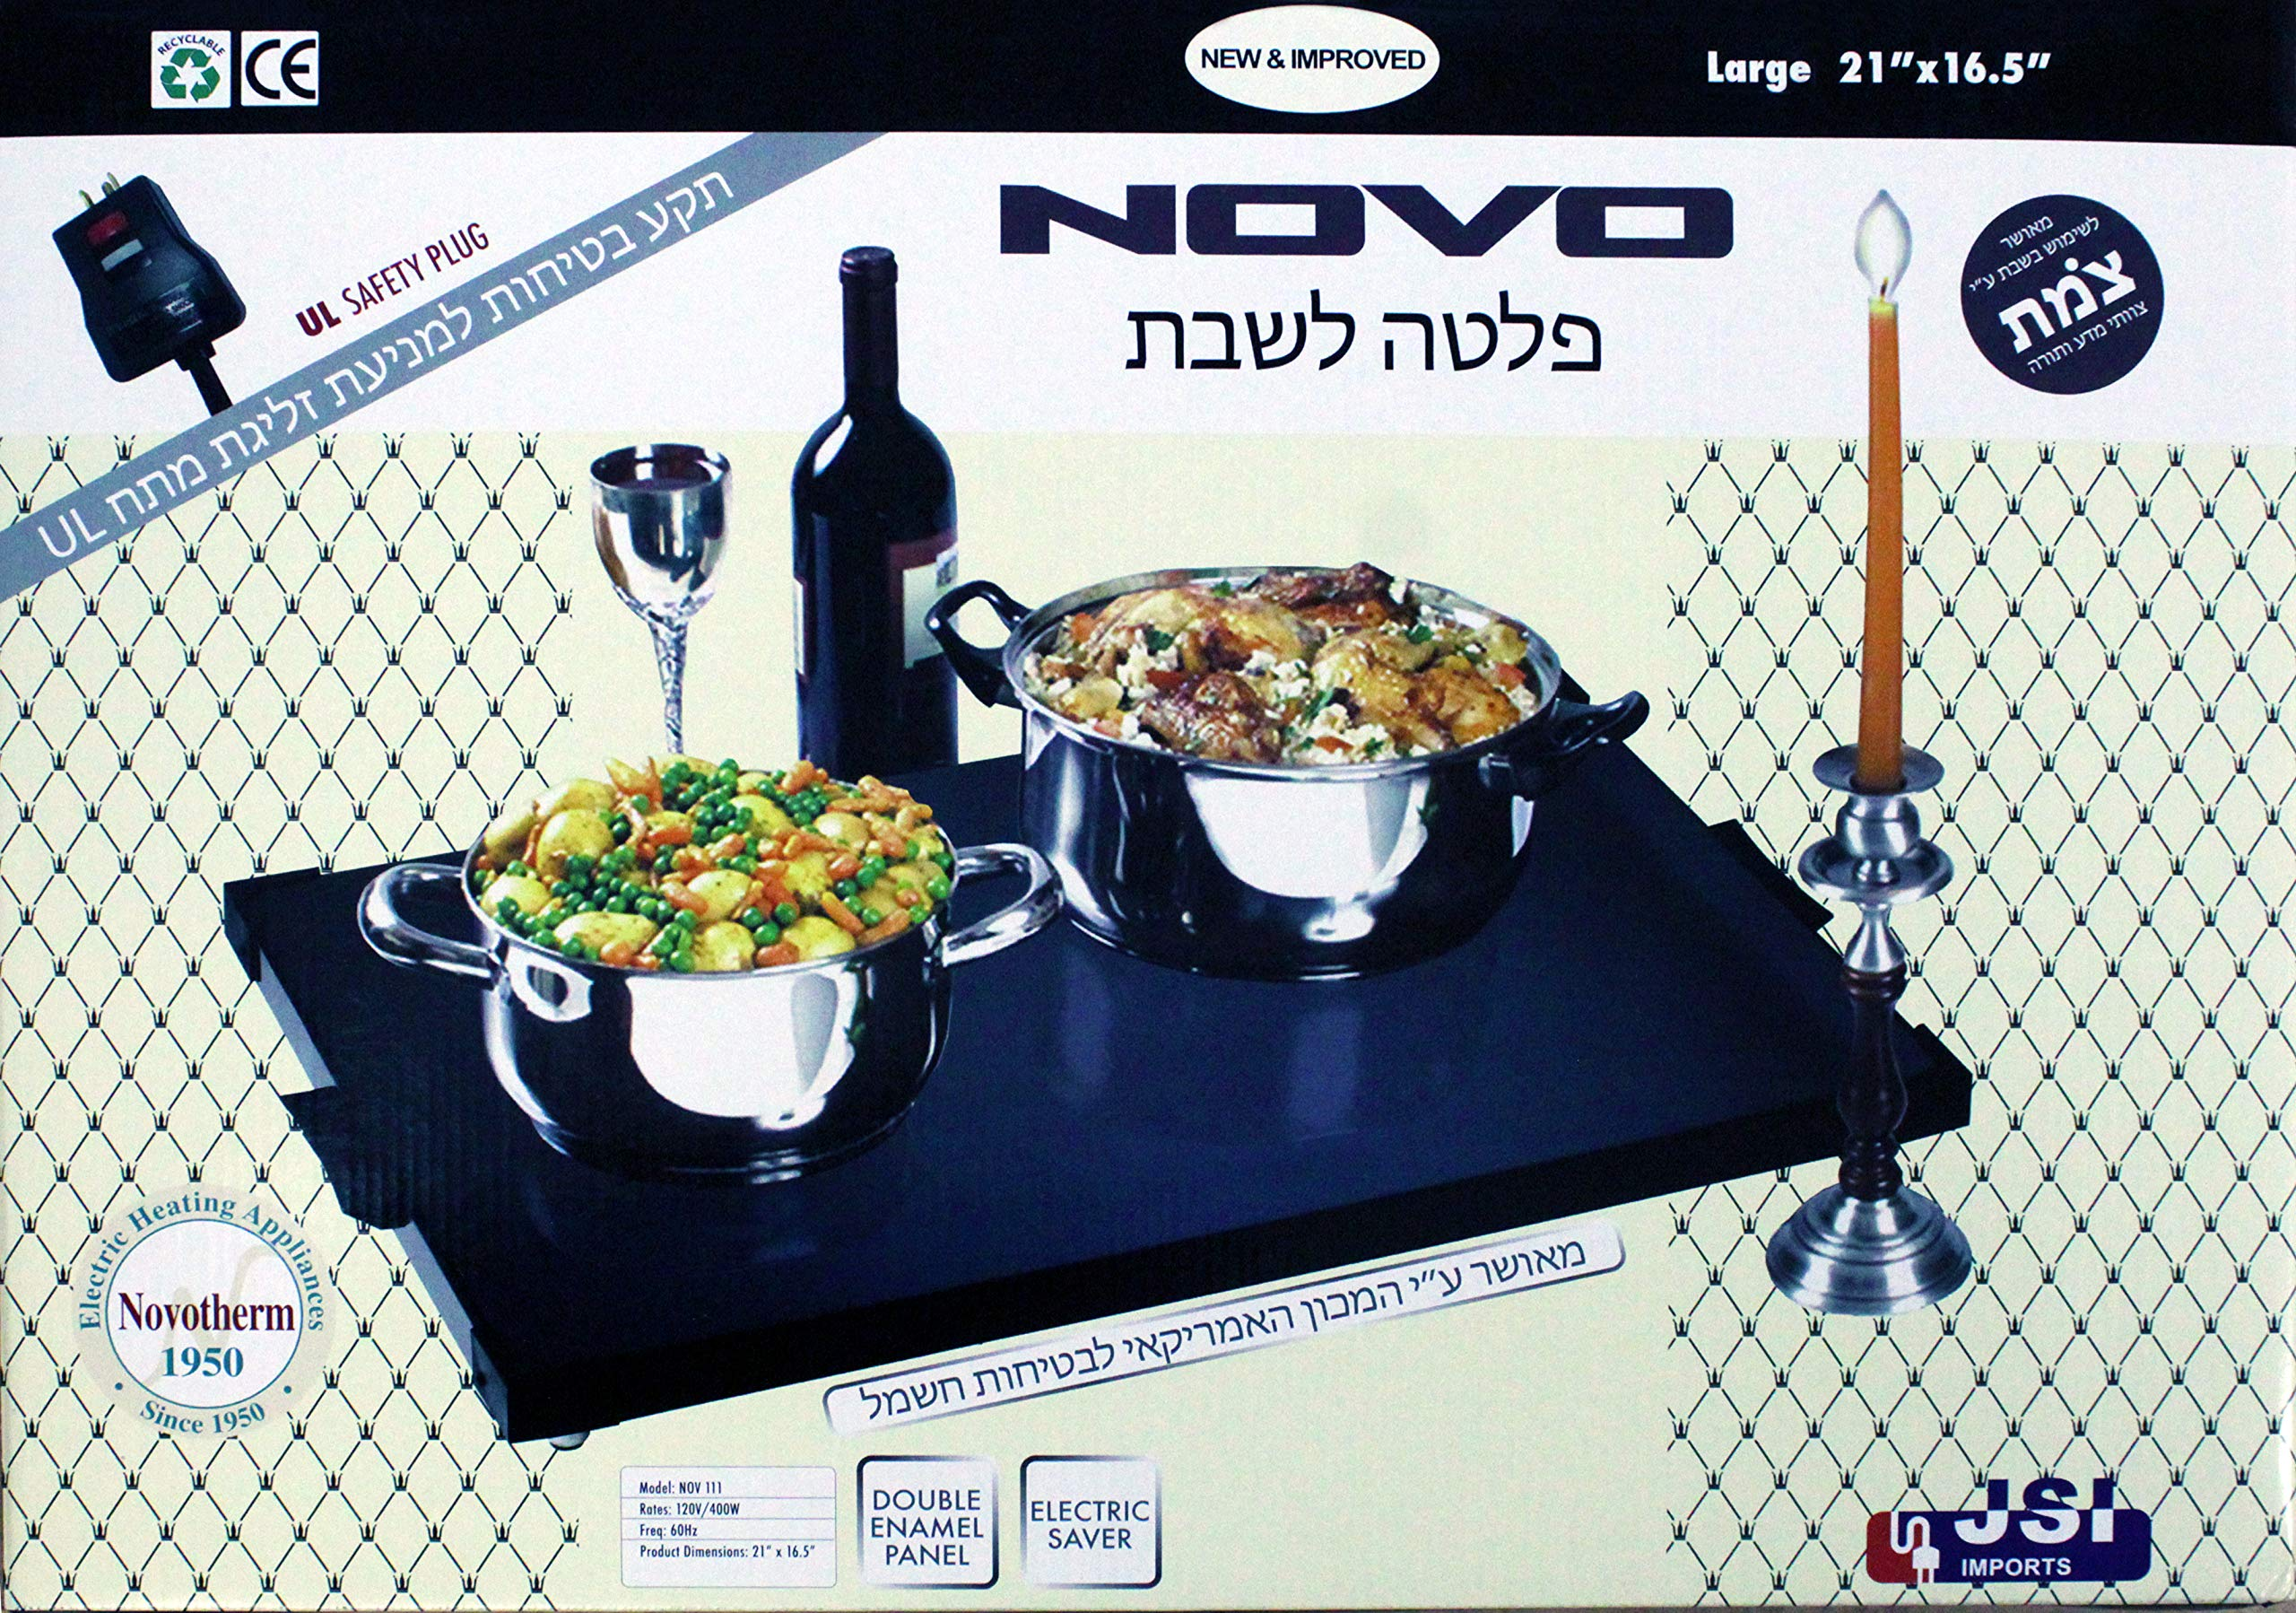 Shabbat Hot Plate NOVO Ceramic Heating System With Metal Protection (LARGE 21''x16.5'')